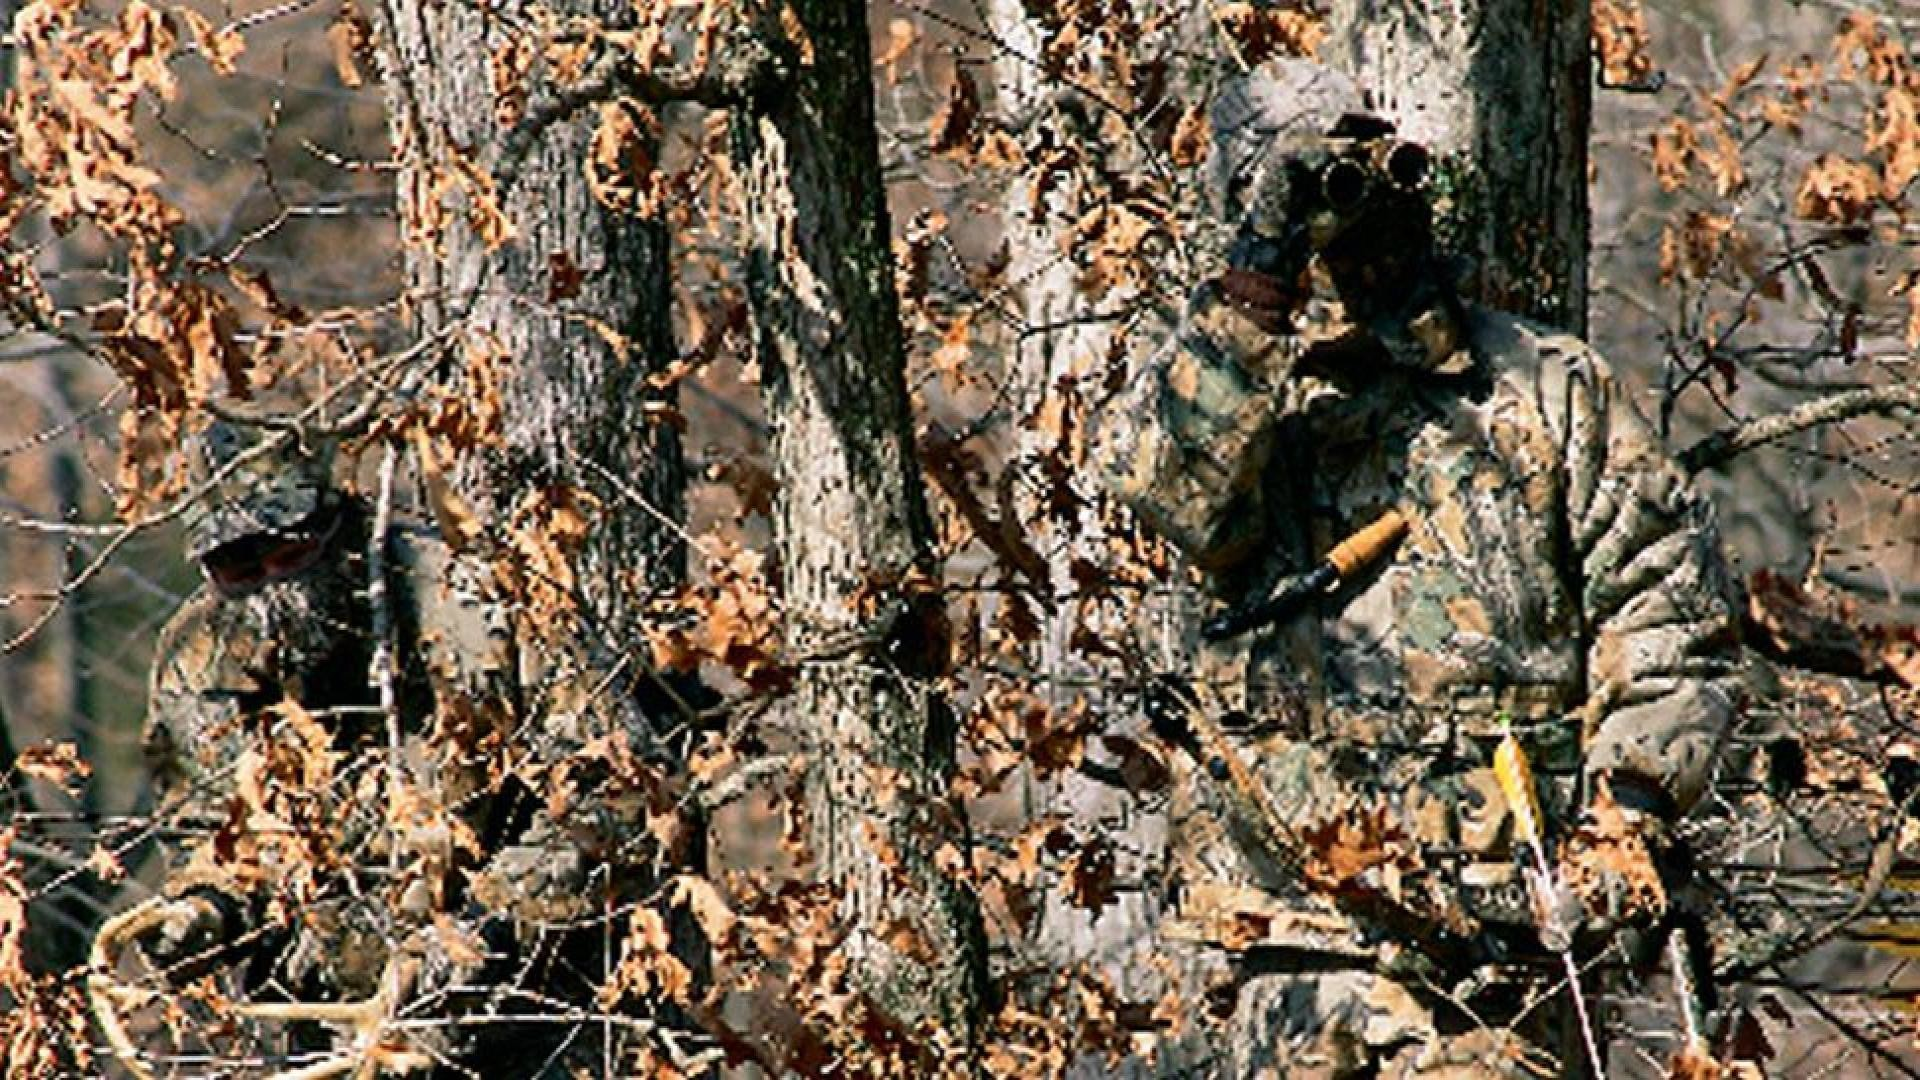 1920x1080 Free Mossy Oak Desktop Wallpaper, Image ID:100242737, High Quality Creative